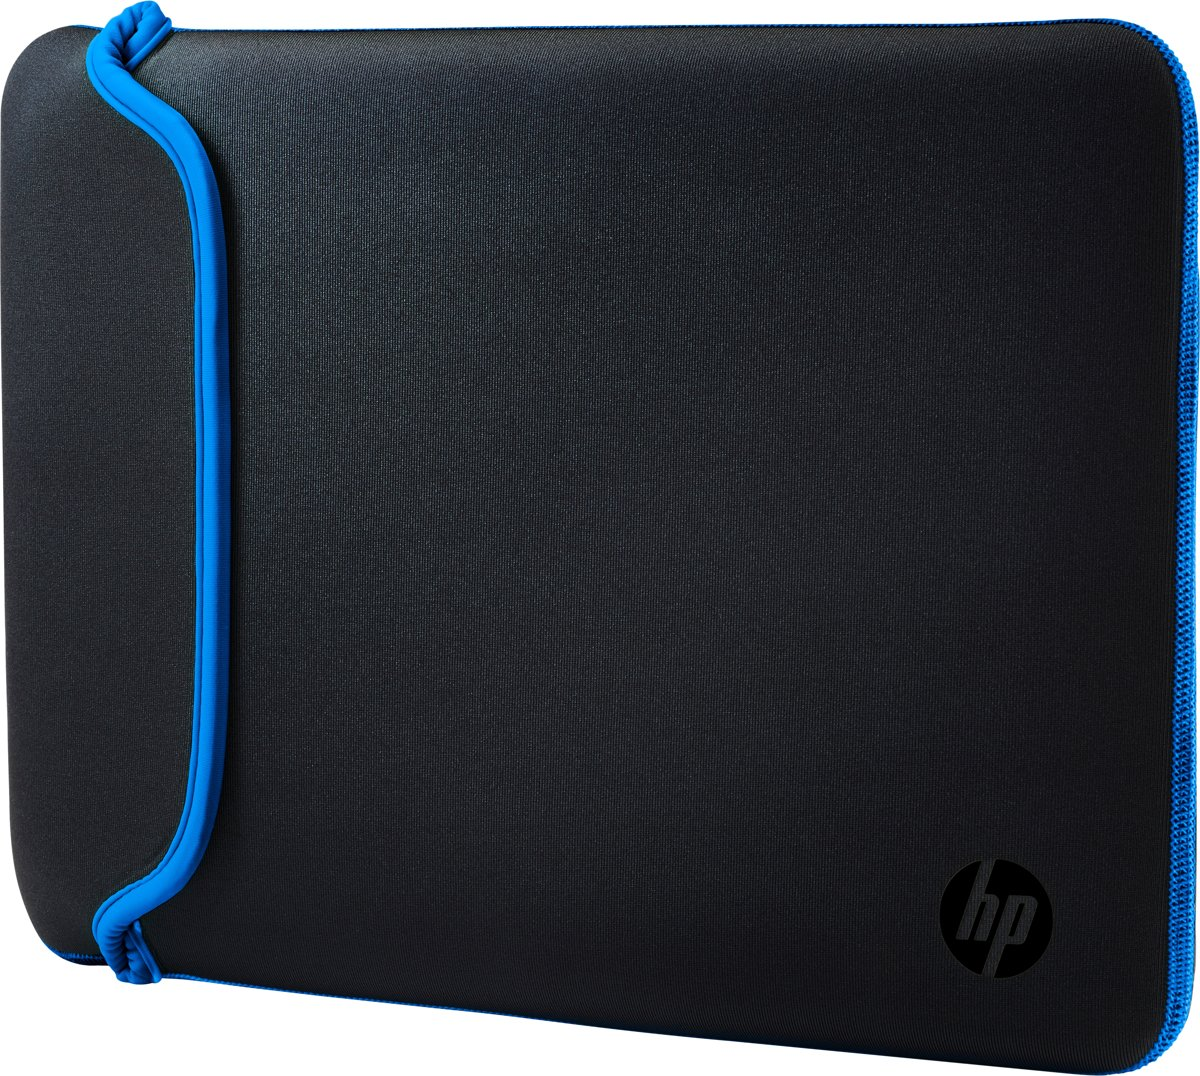 HP Chroma Hoes 15,6 Inch Blauw kopen